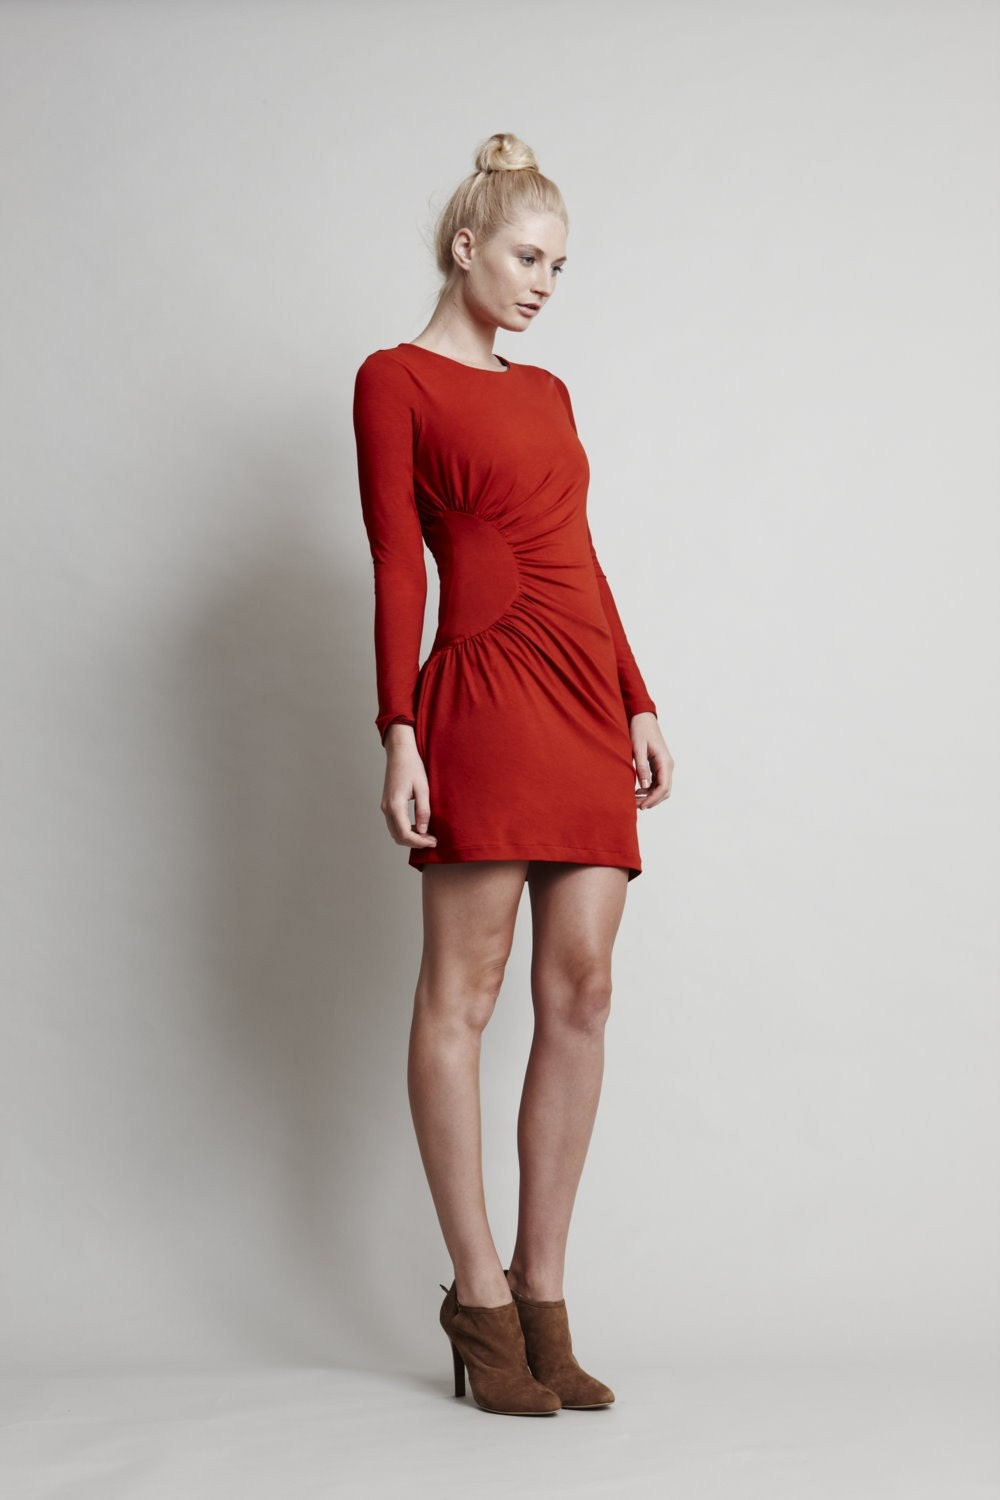 Blaze Dress - Long Sleeve Red Jersey Mini with Round Neck and Circular Gathers on One Side - Super flattering - threelittleducksaust